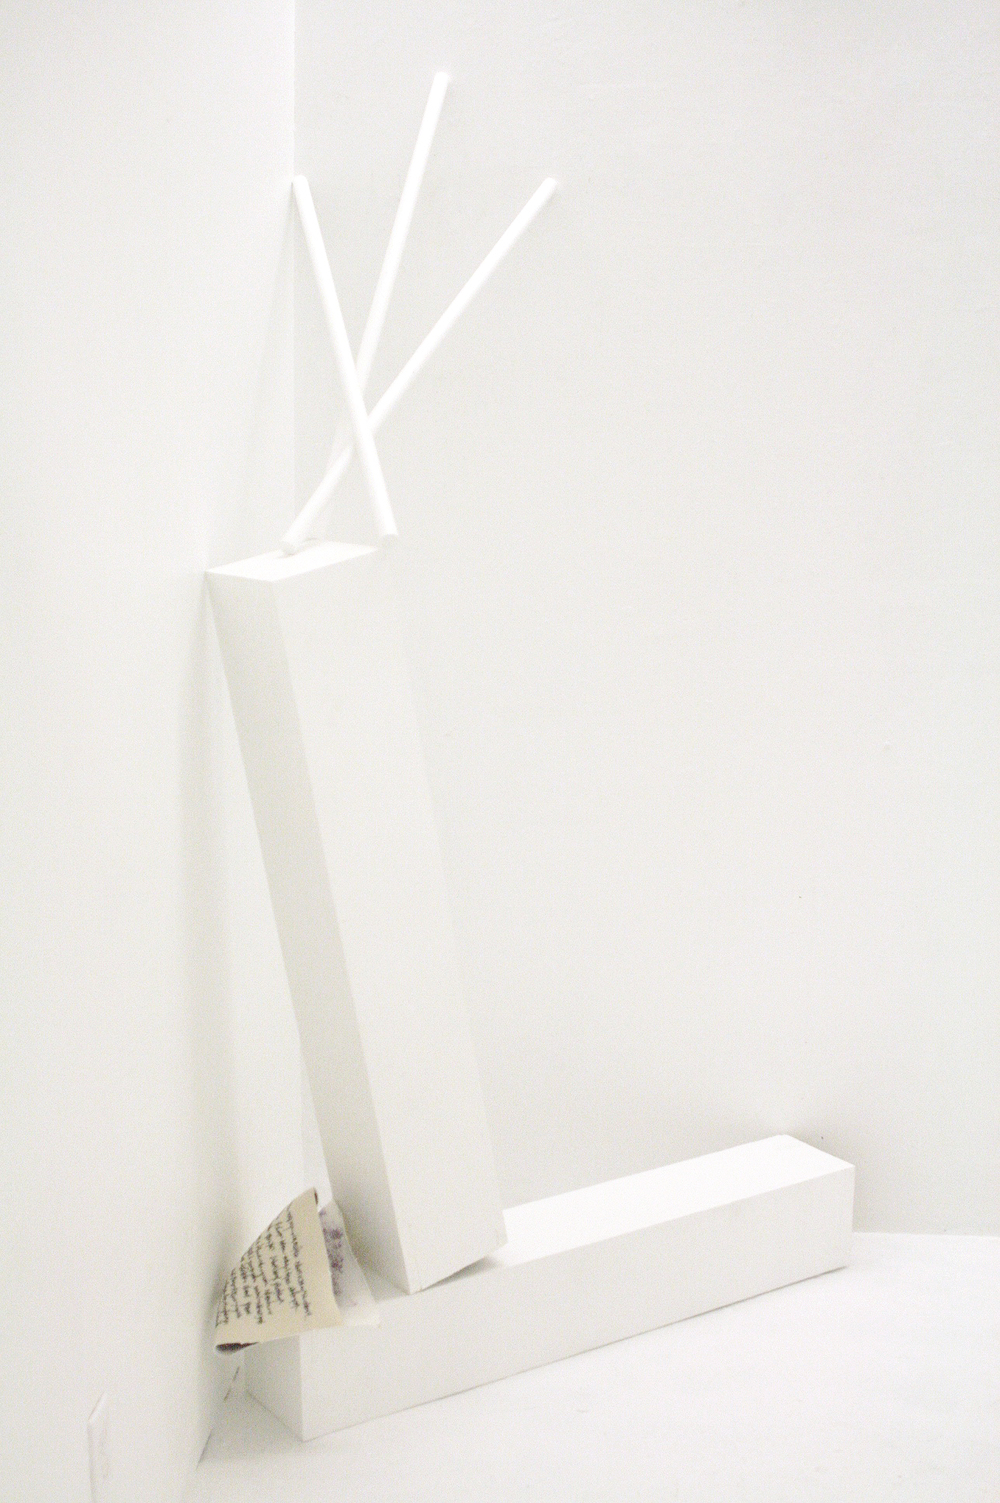 Invisible Monster Mixed Media Dimensions variable, approximately 43 x 22 x 70 in. 2015